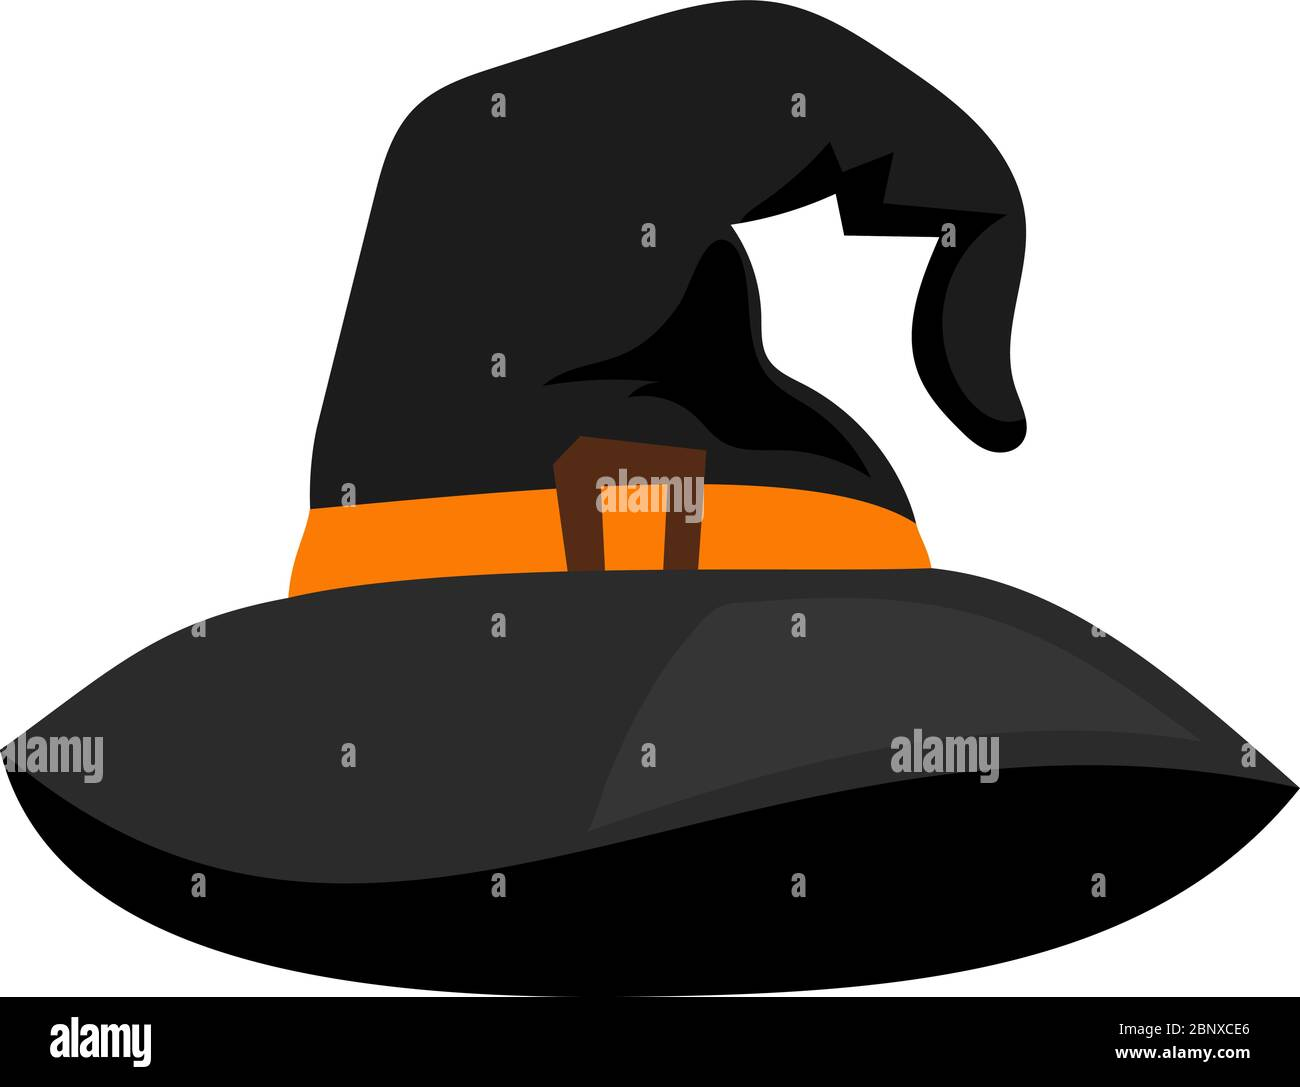 Cartoon Witch Hat High Resolution Stock Photography And Images Alamy